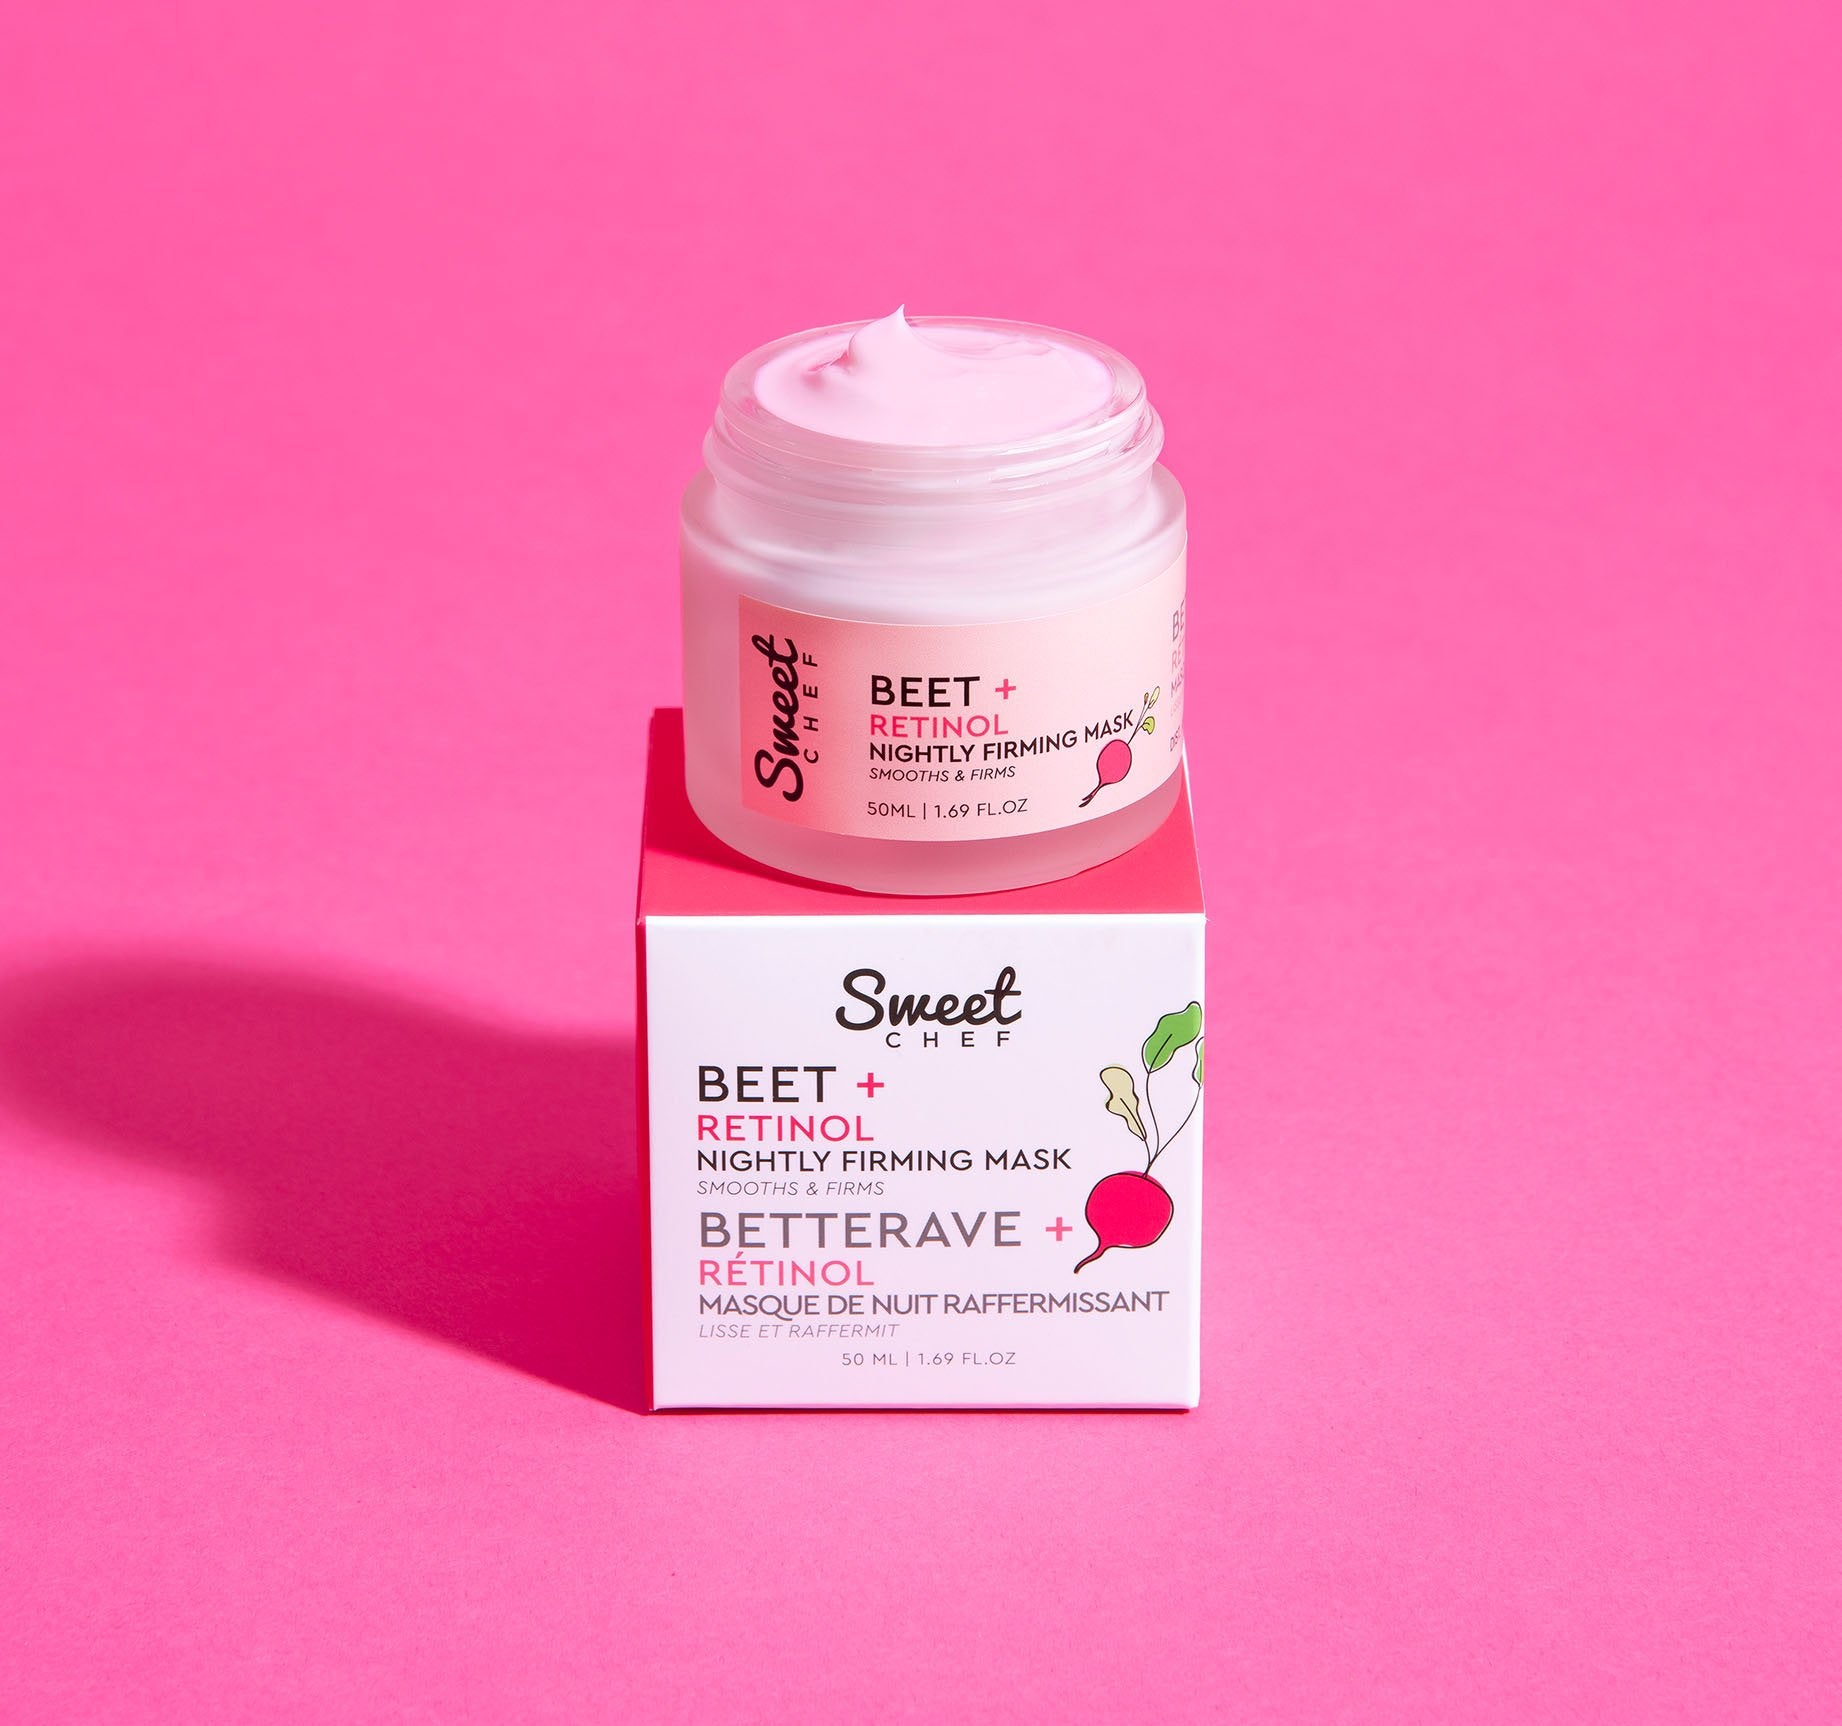 BEET + RETINOL NIGHTLY FIRMING MASK, view larger image